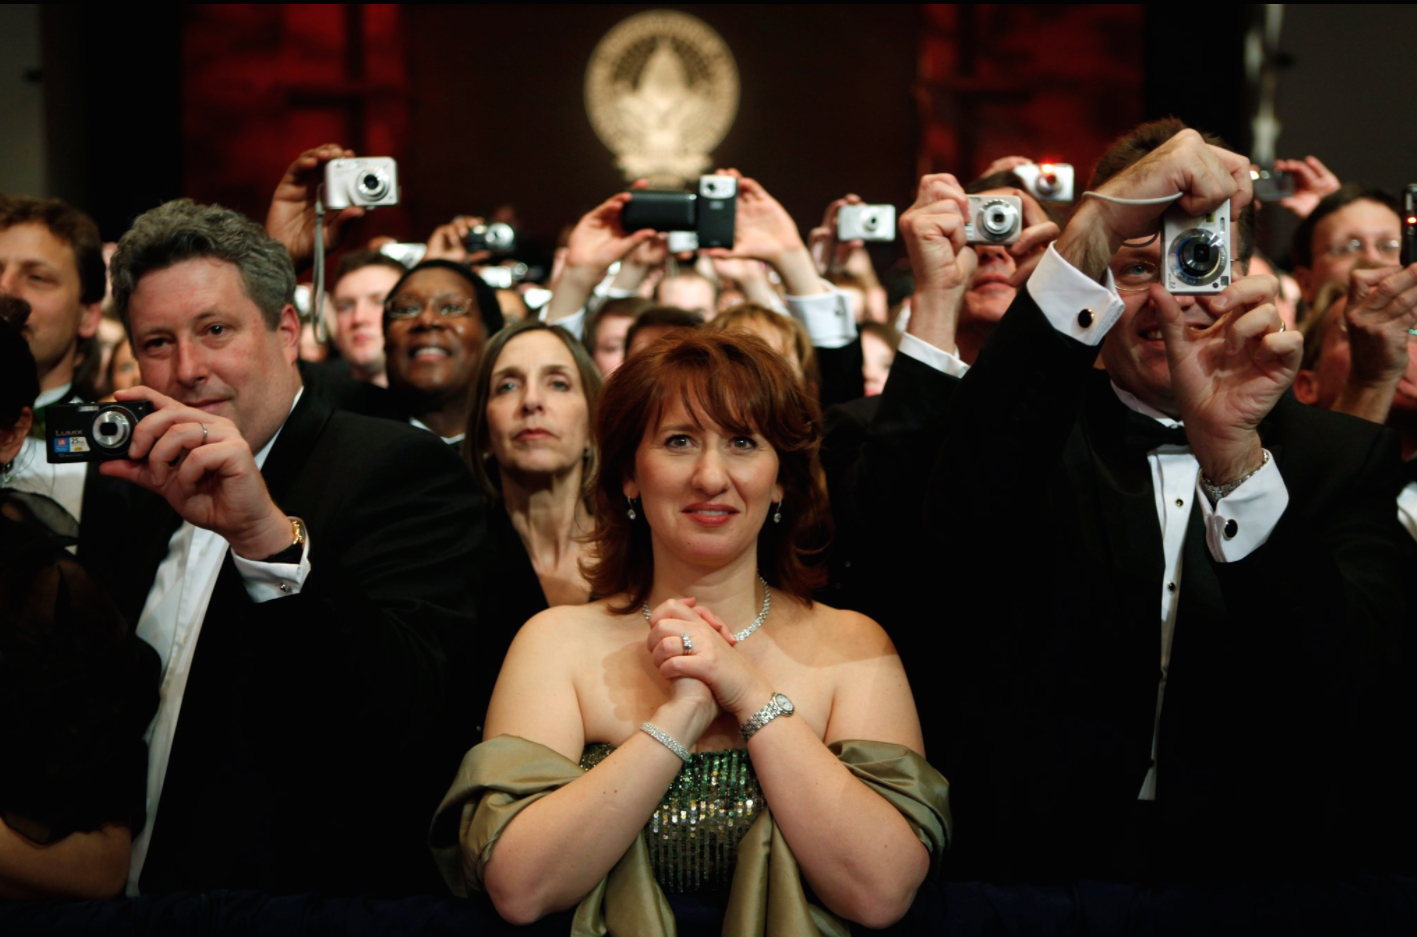 """What's Going on in This Picture?"" featured NY Times image of woman surrounded by a crowd with cameras."